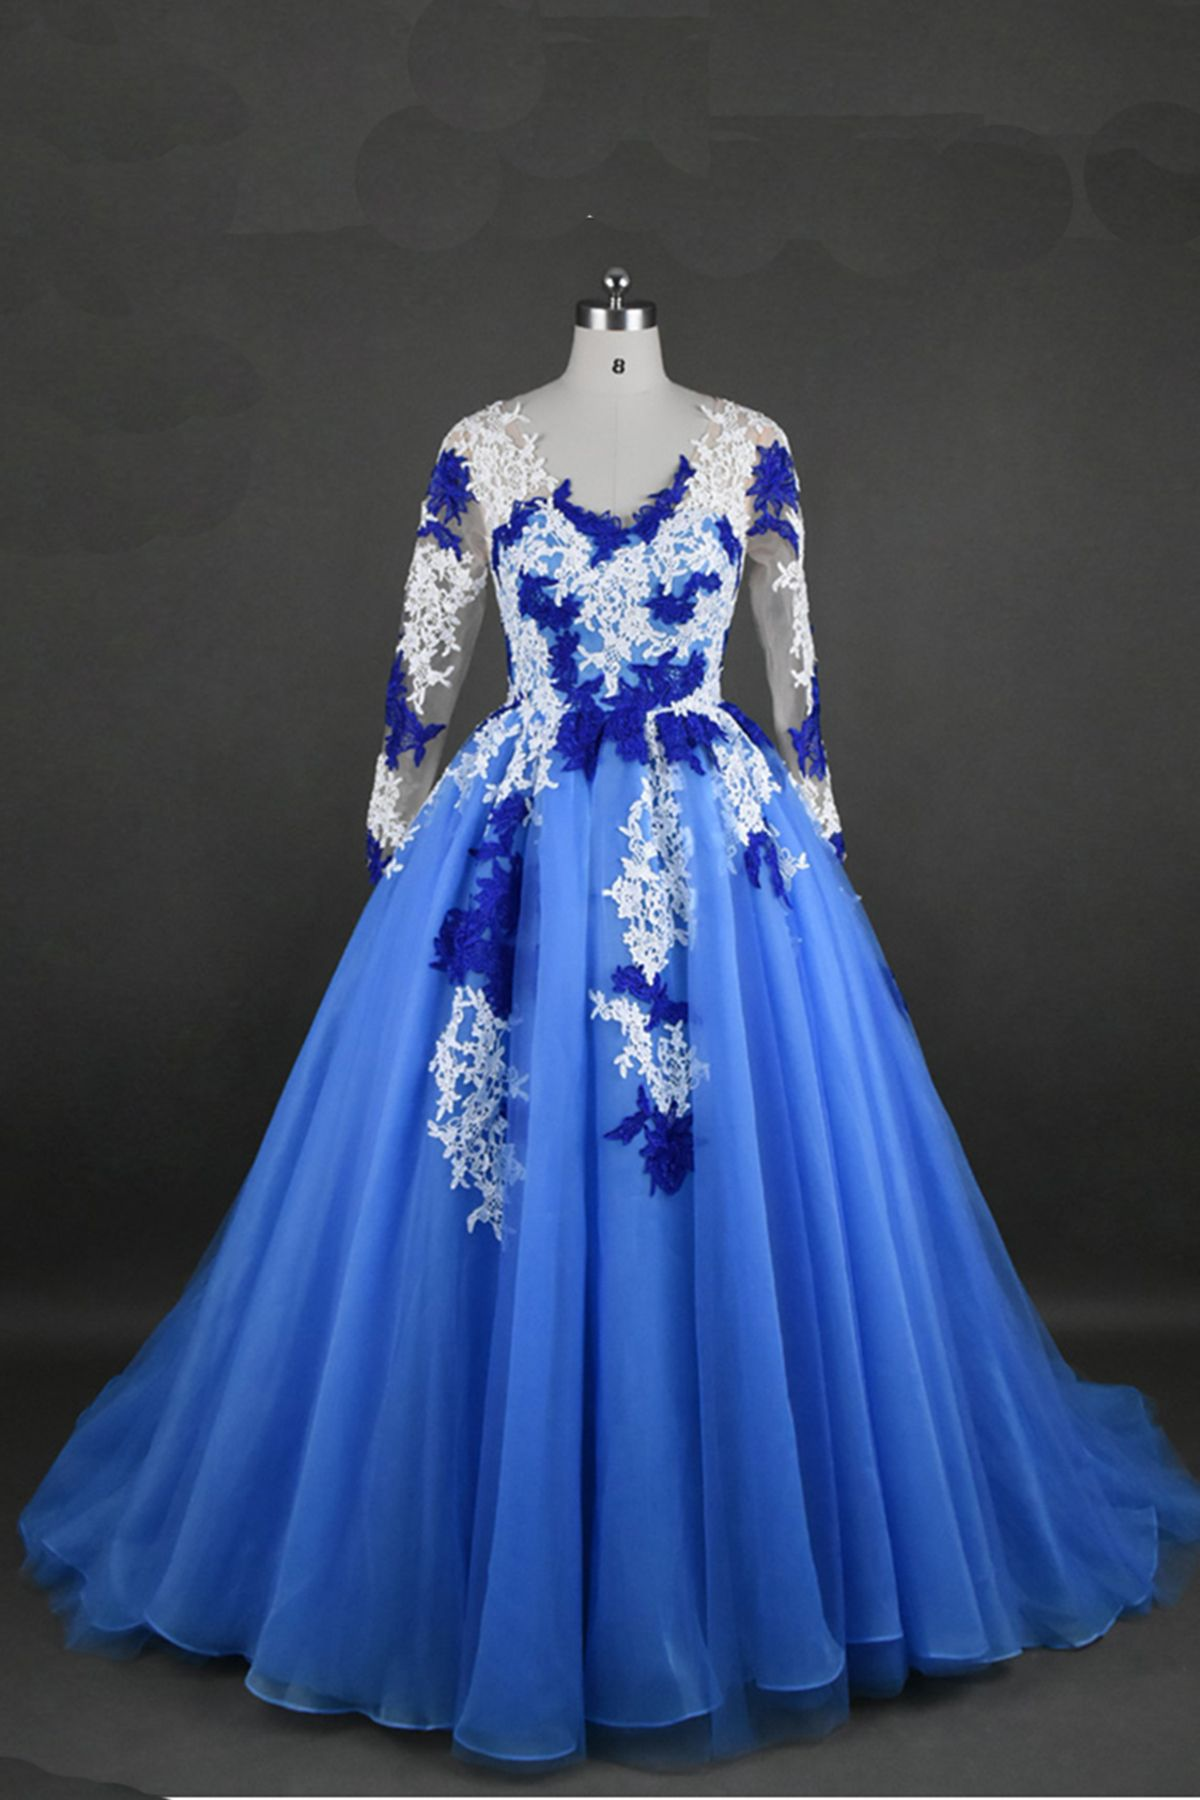 Vintage prom dress blue chiffon prom dress with lace appliques